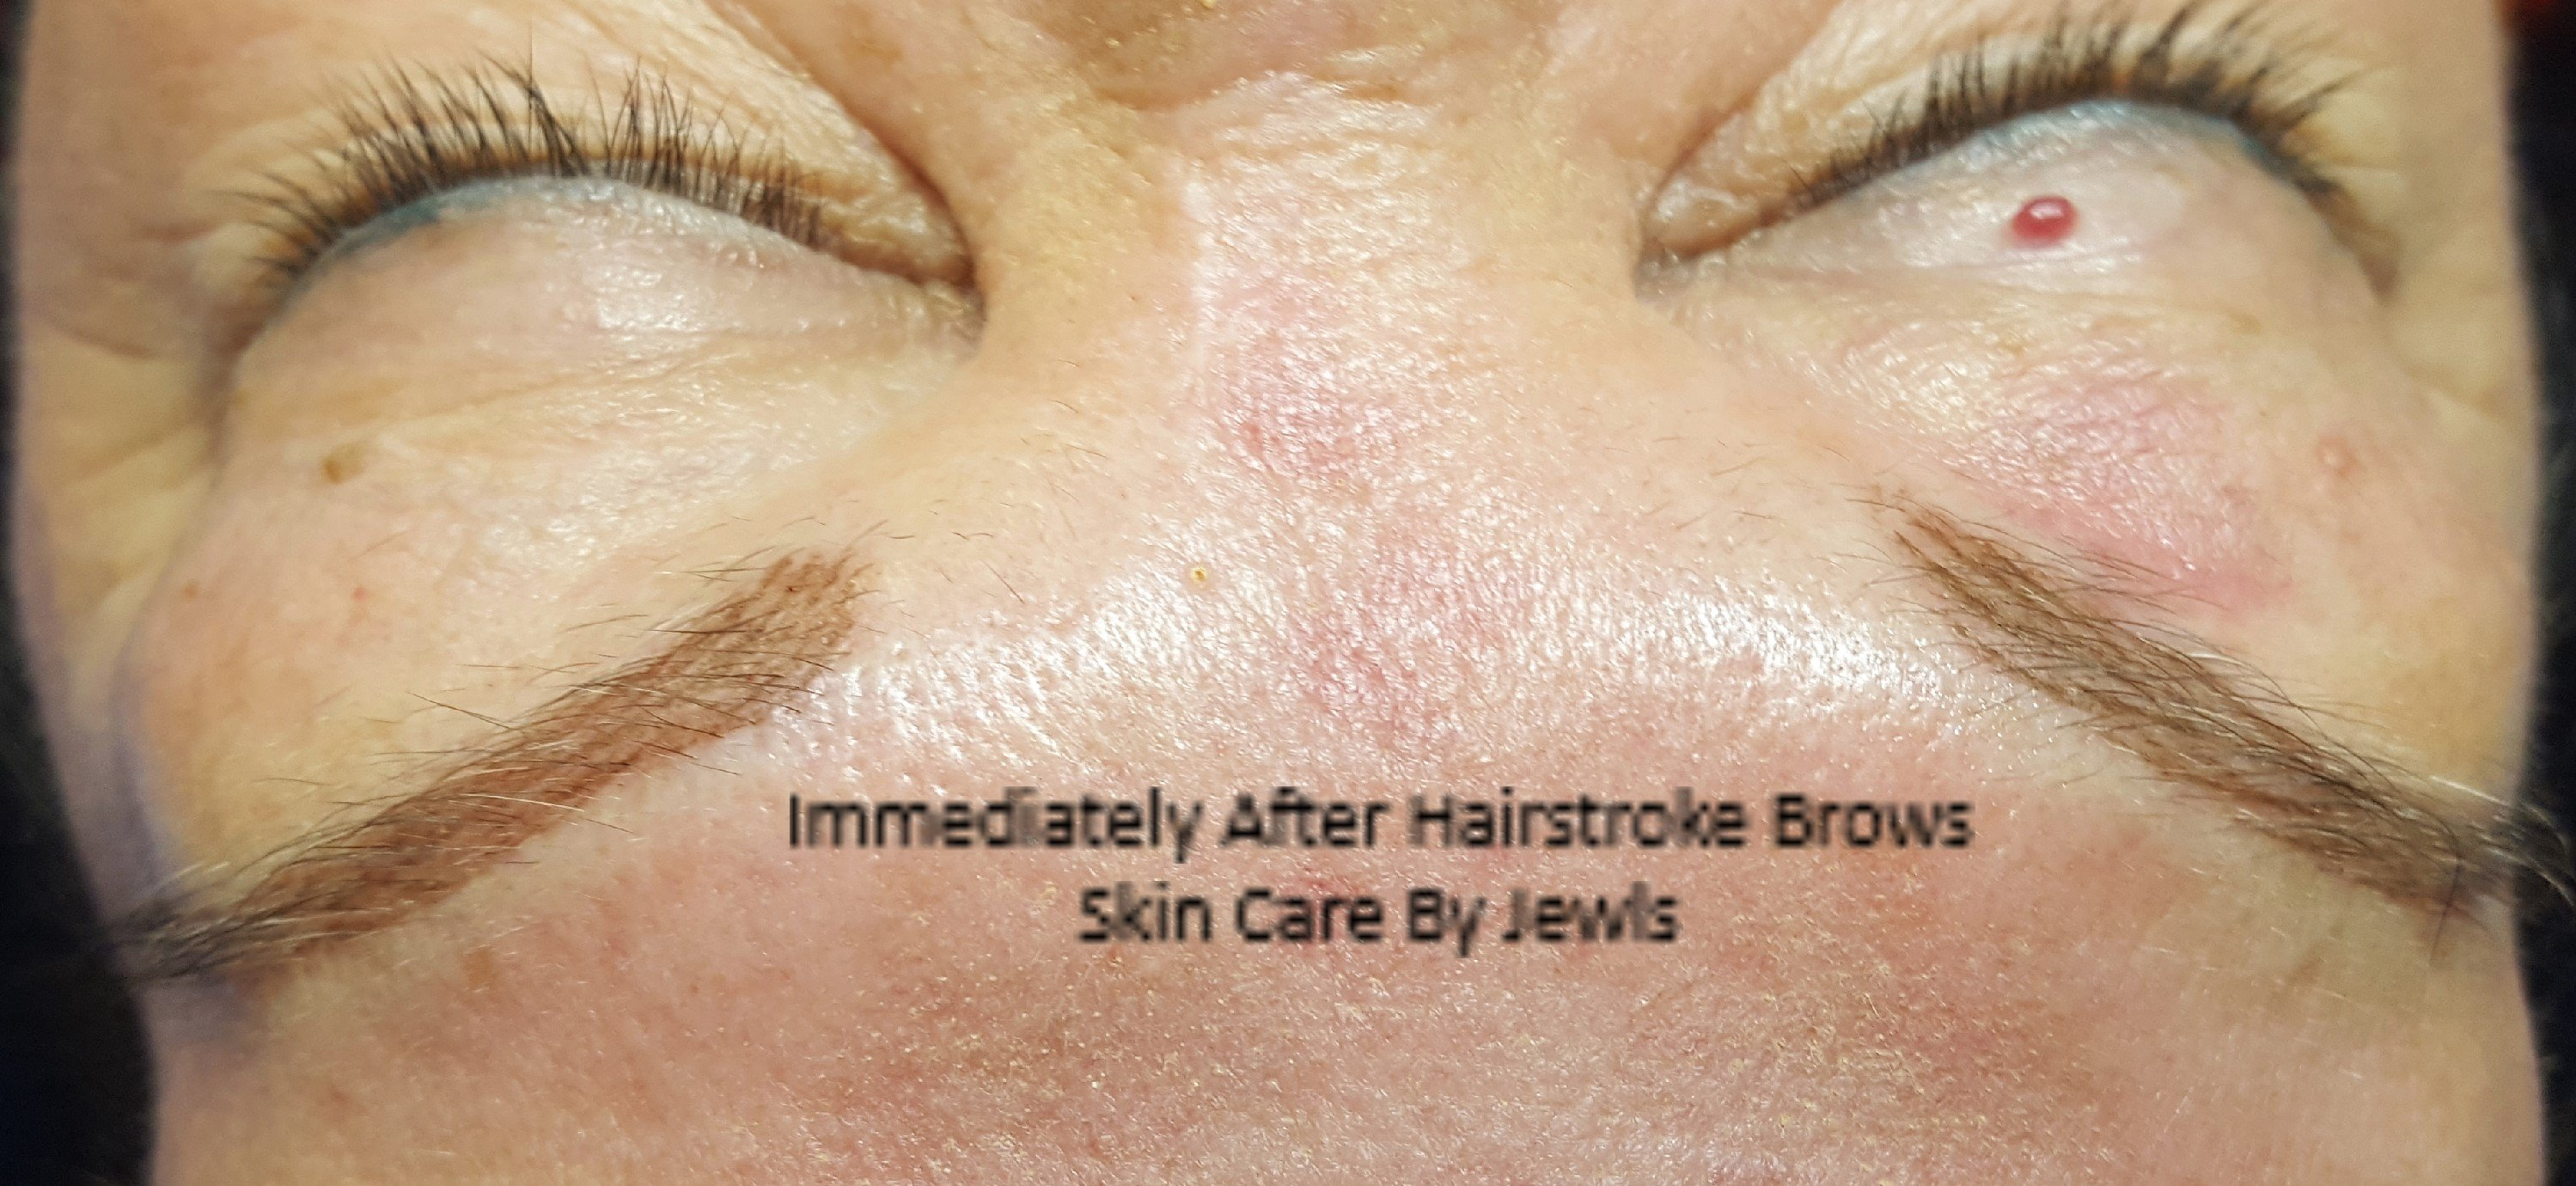 Digital Microblading Hairstroke Brows